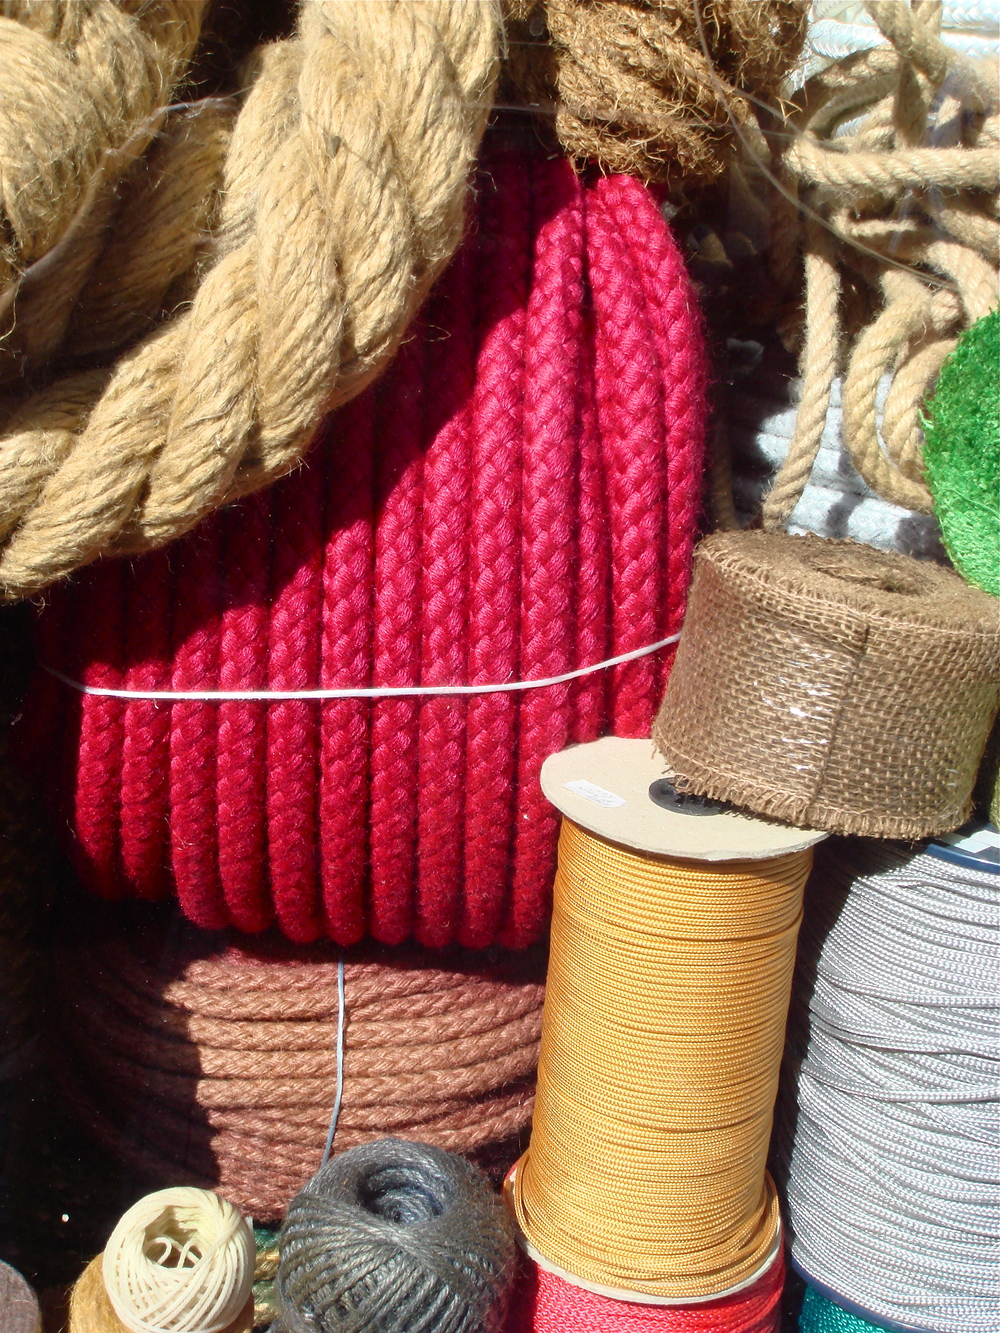 A collection of colourful ropes and twine at a street market in Prague